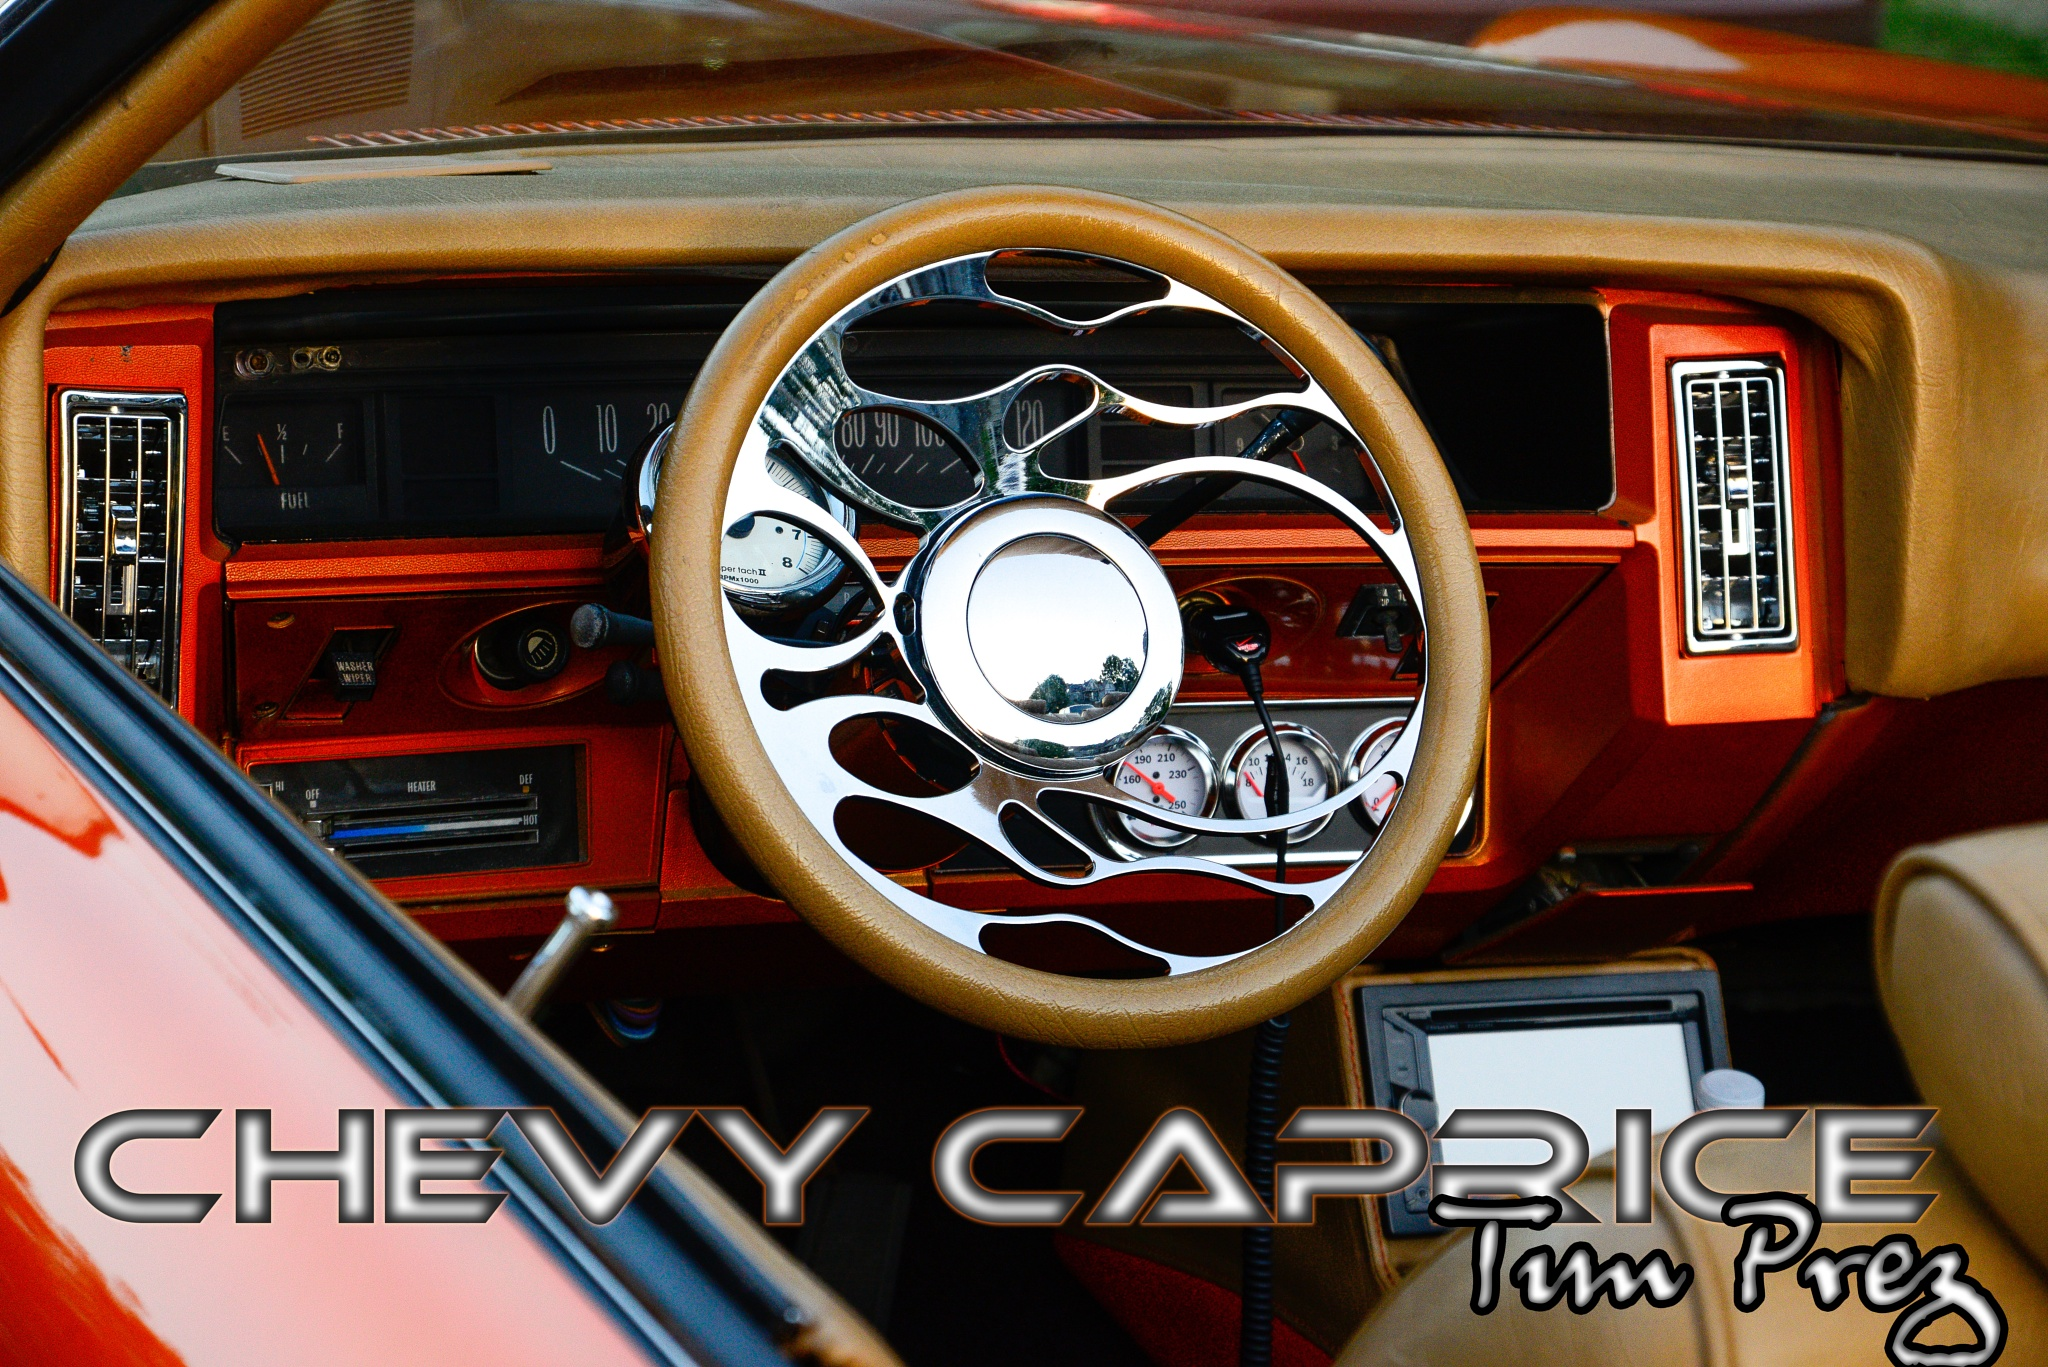 73 CHEVY CAPRICE by picturemeperfectphotography